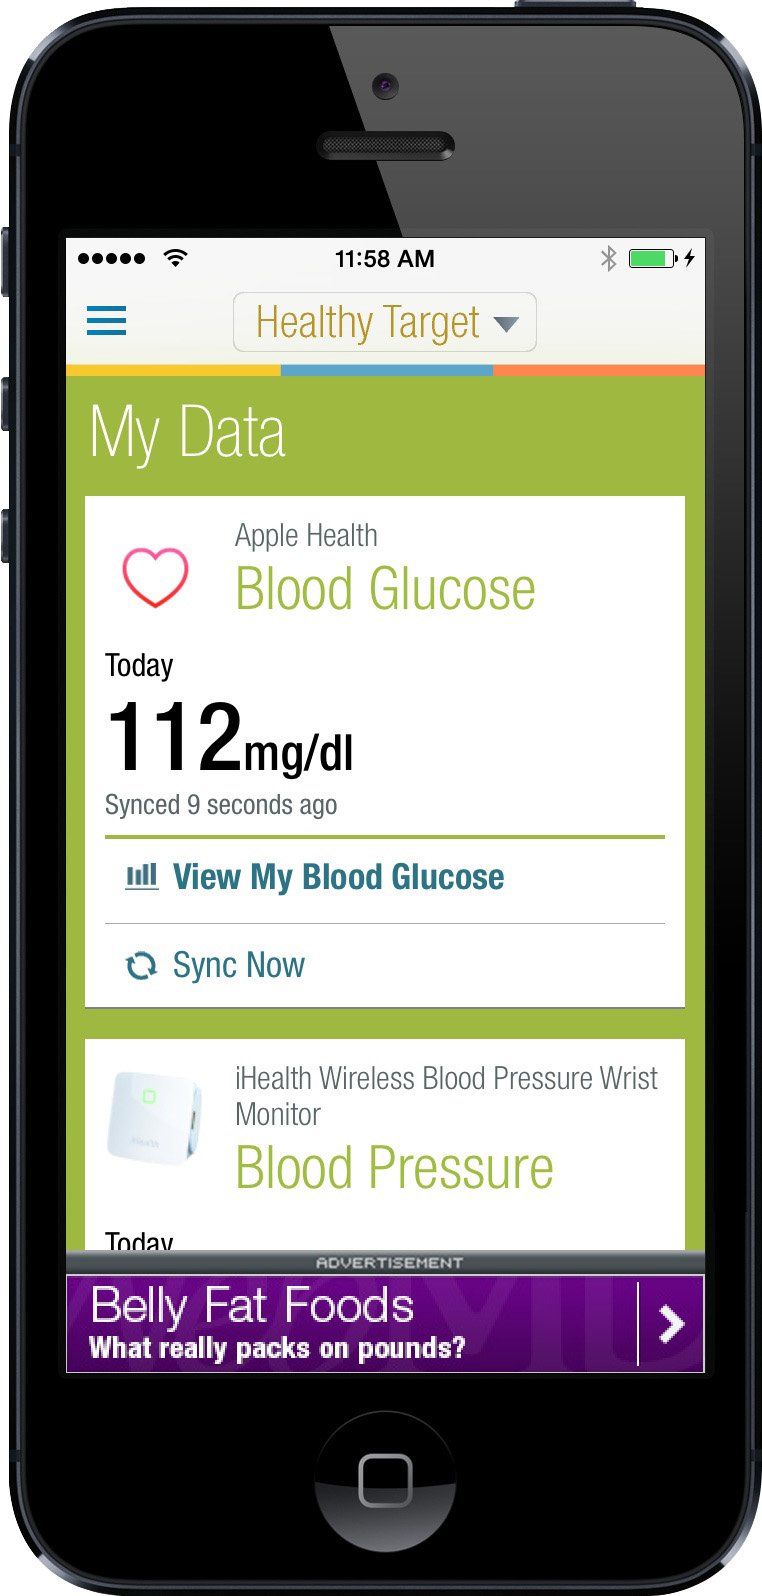 WebMD Announces Major Updates To Healthy Target Behavior Change Program